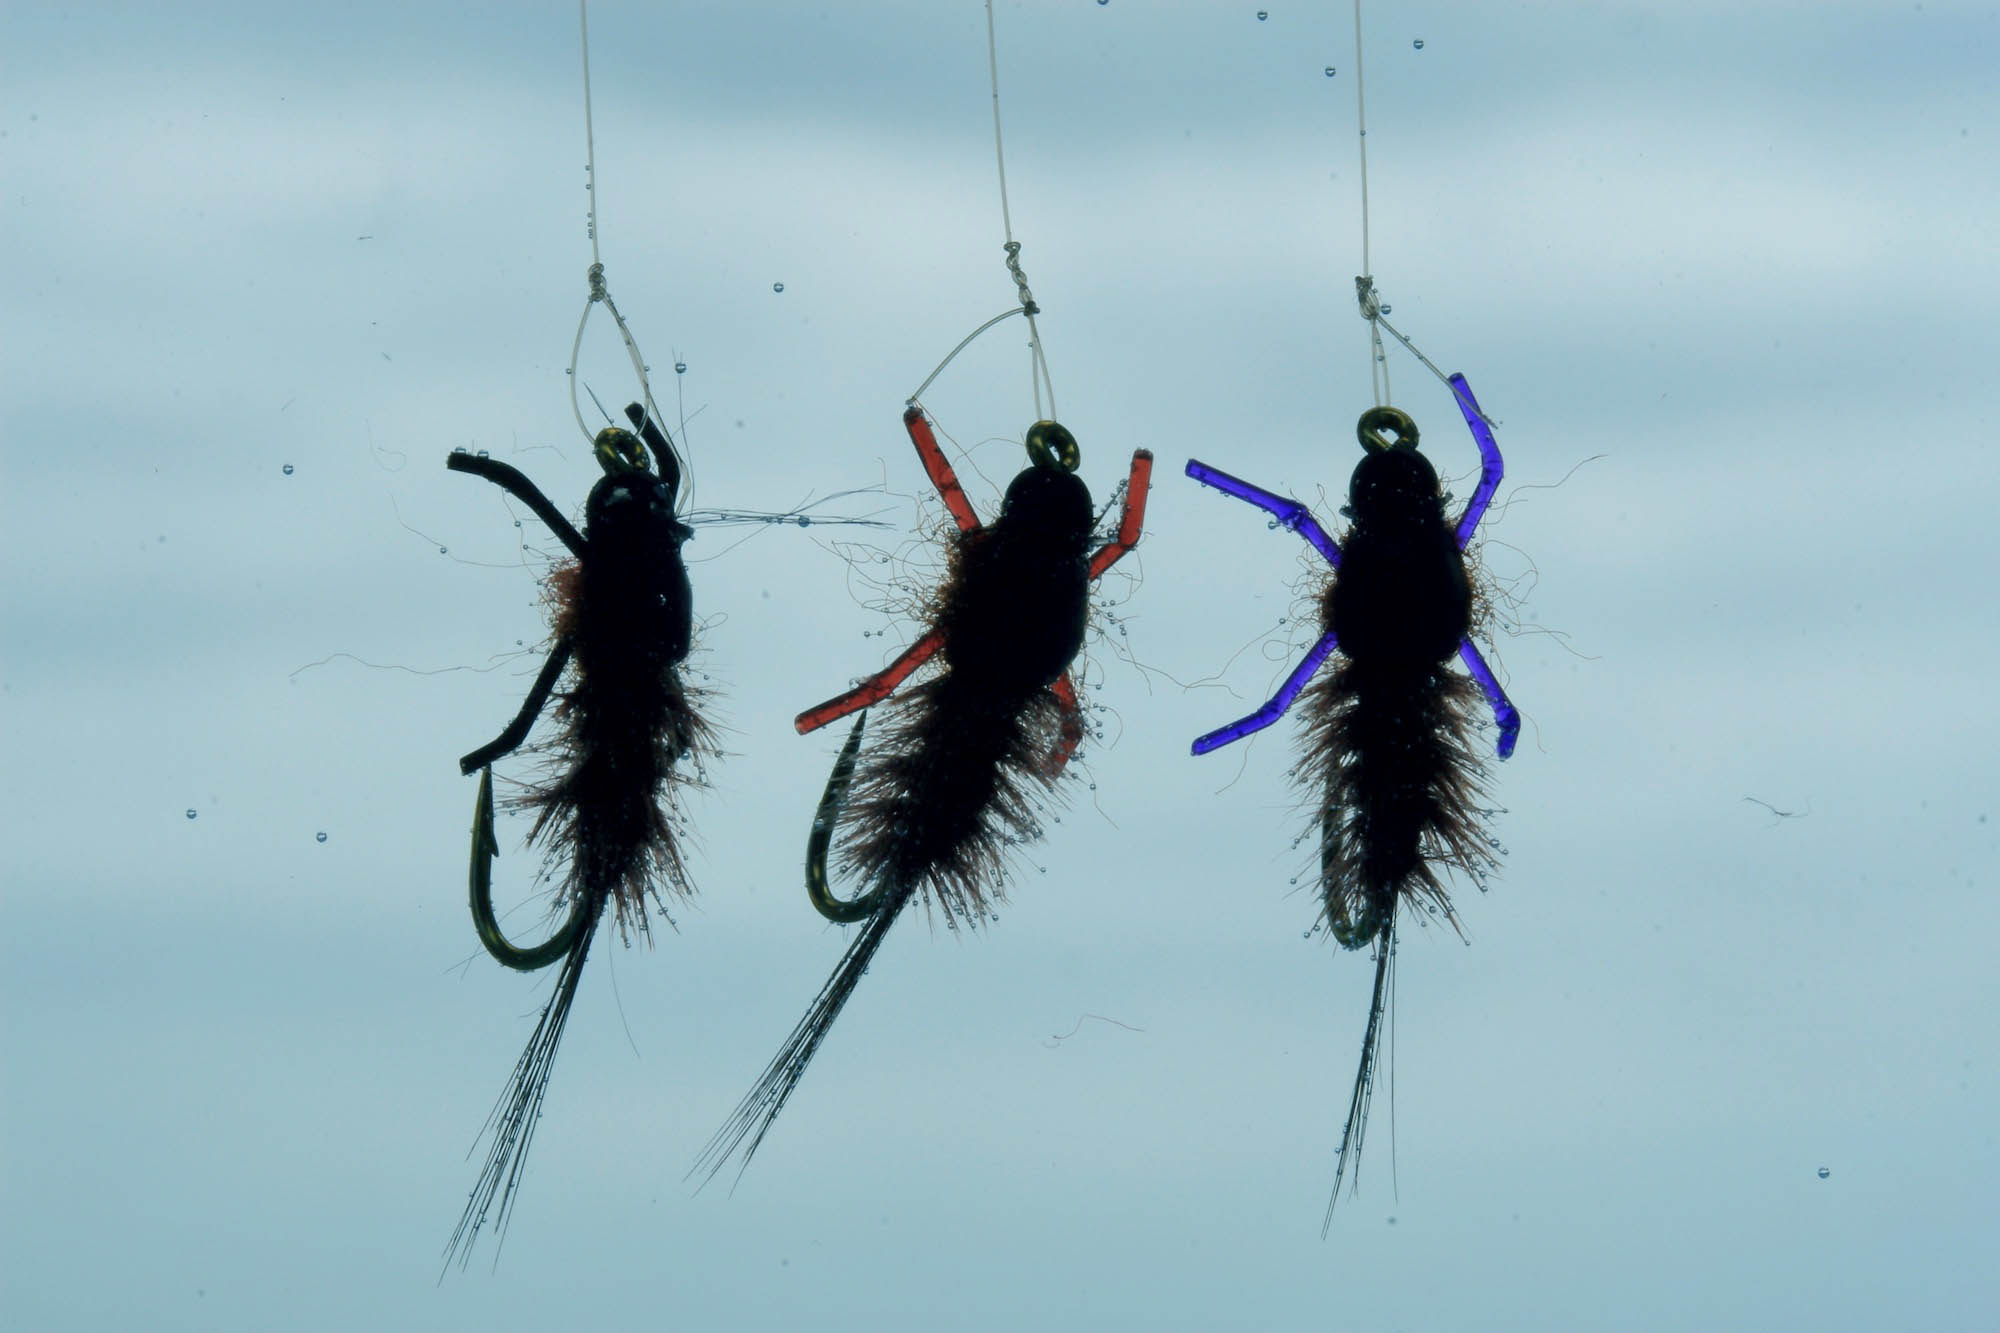 Three Jelly Leg Colly flies hanging suspended in water